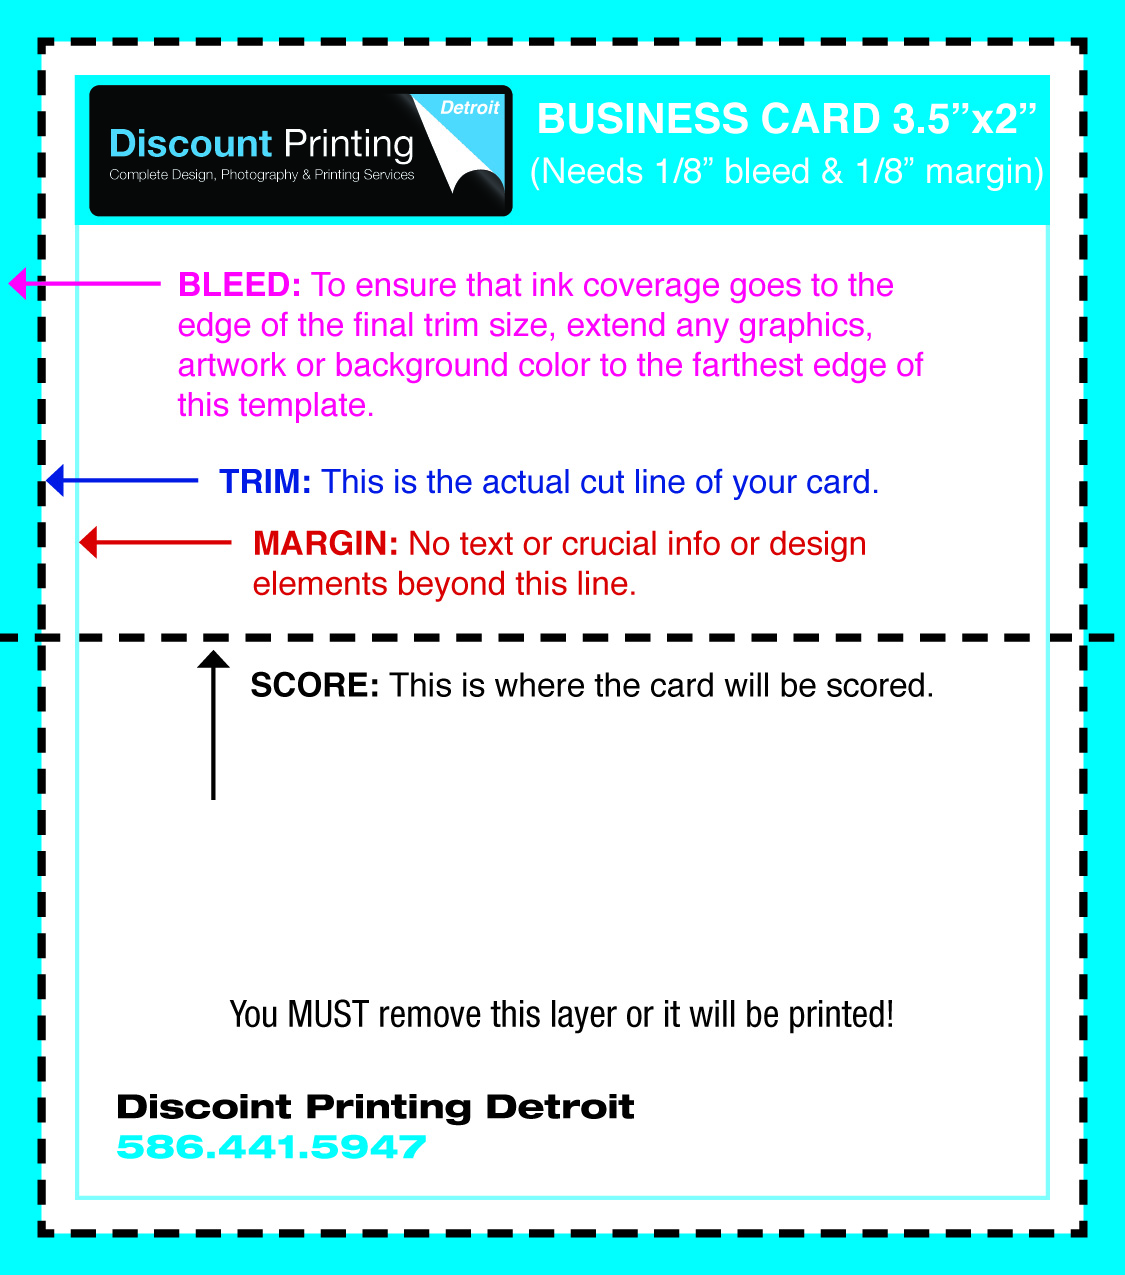 Printing templates for graphic design discount printing detroit fold over business card 35 x 4 folds to 35x2 download g maxwellsz